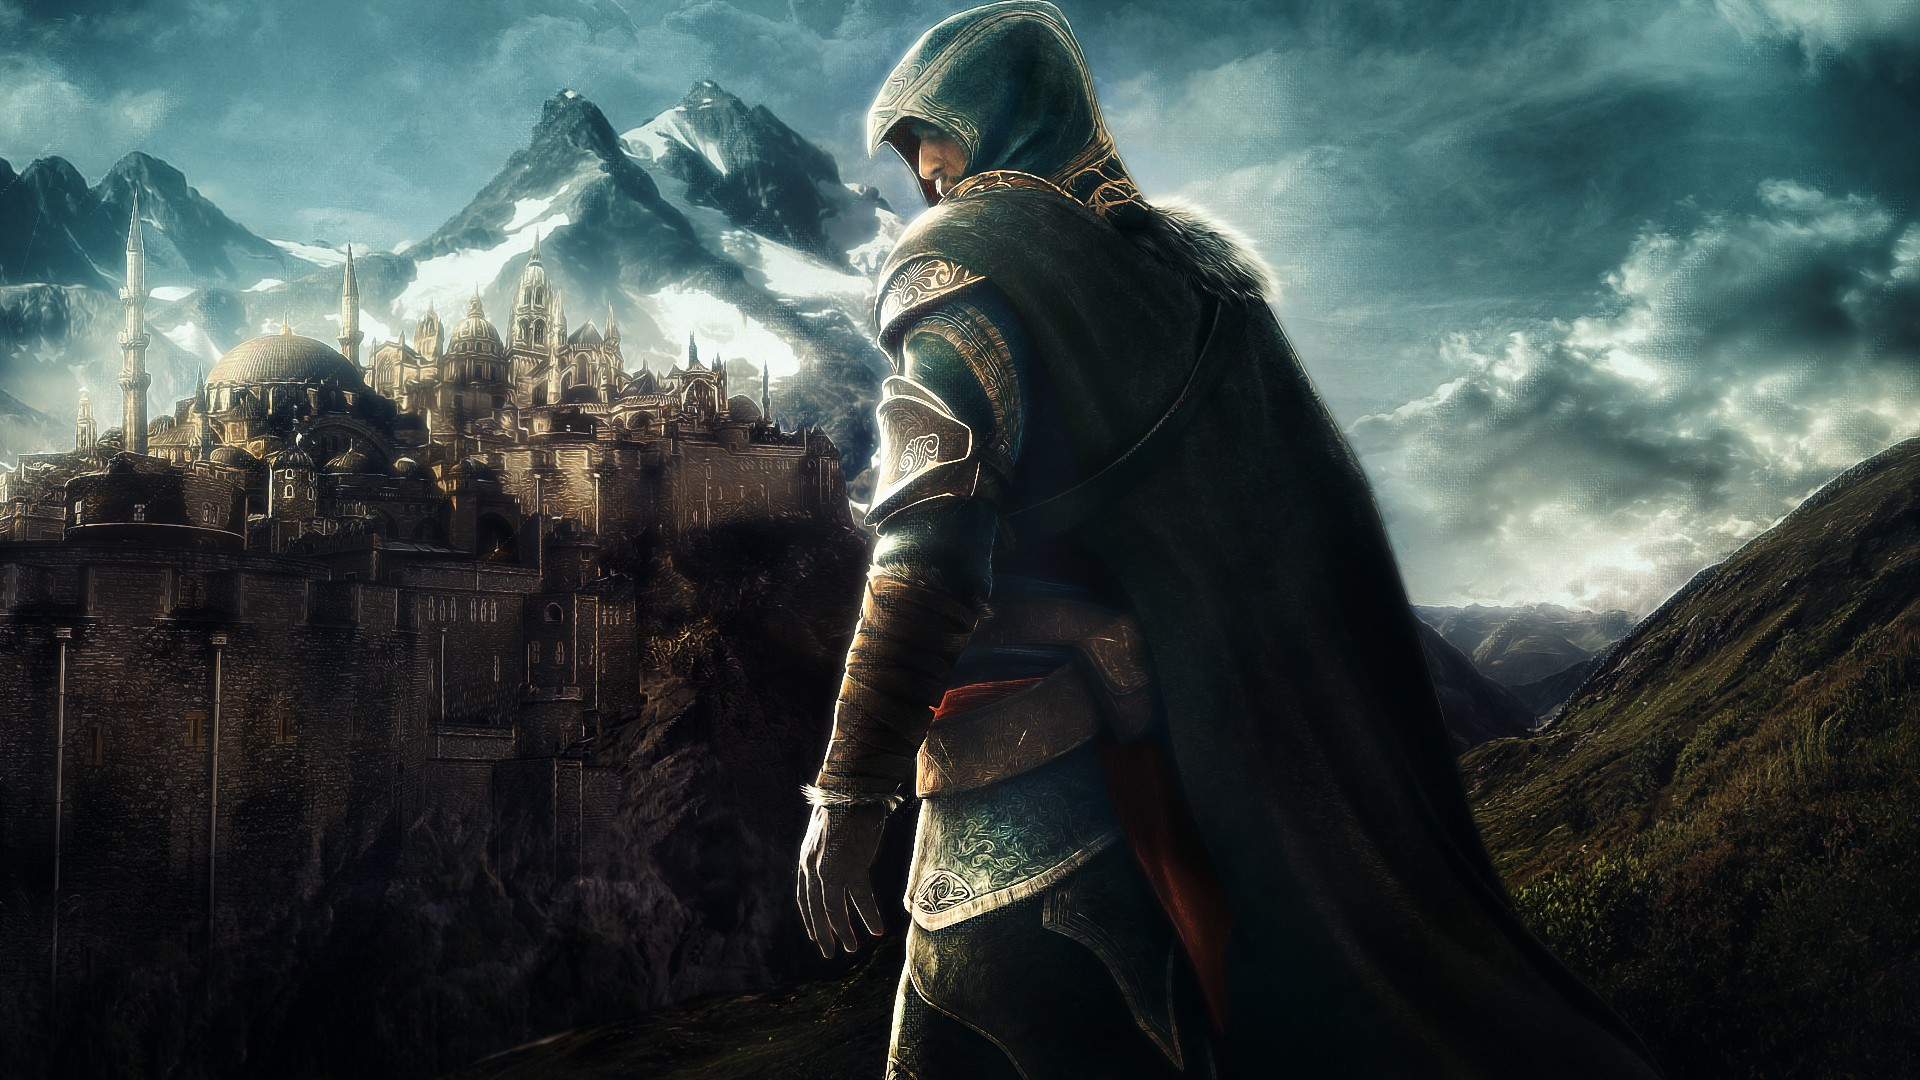 Hd Gaming Wallpapers 1080P   Widescreen HD Wallpapers 1920x1080